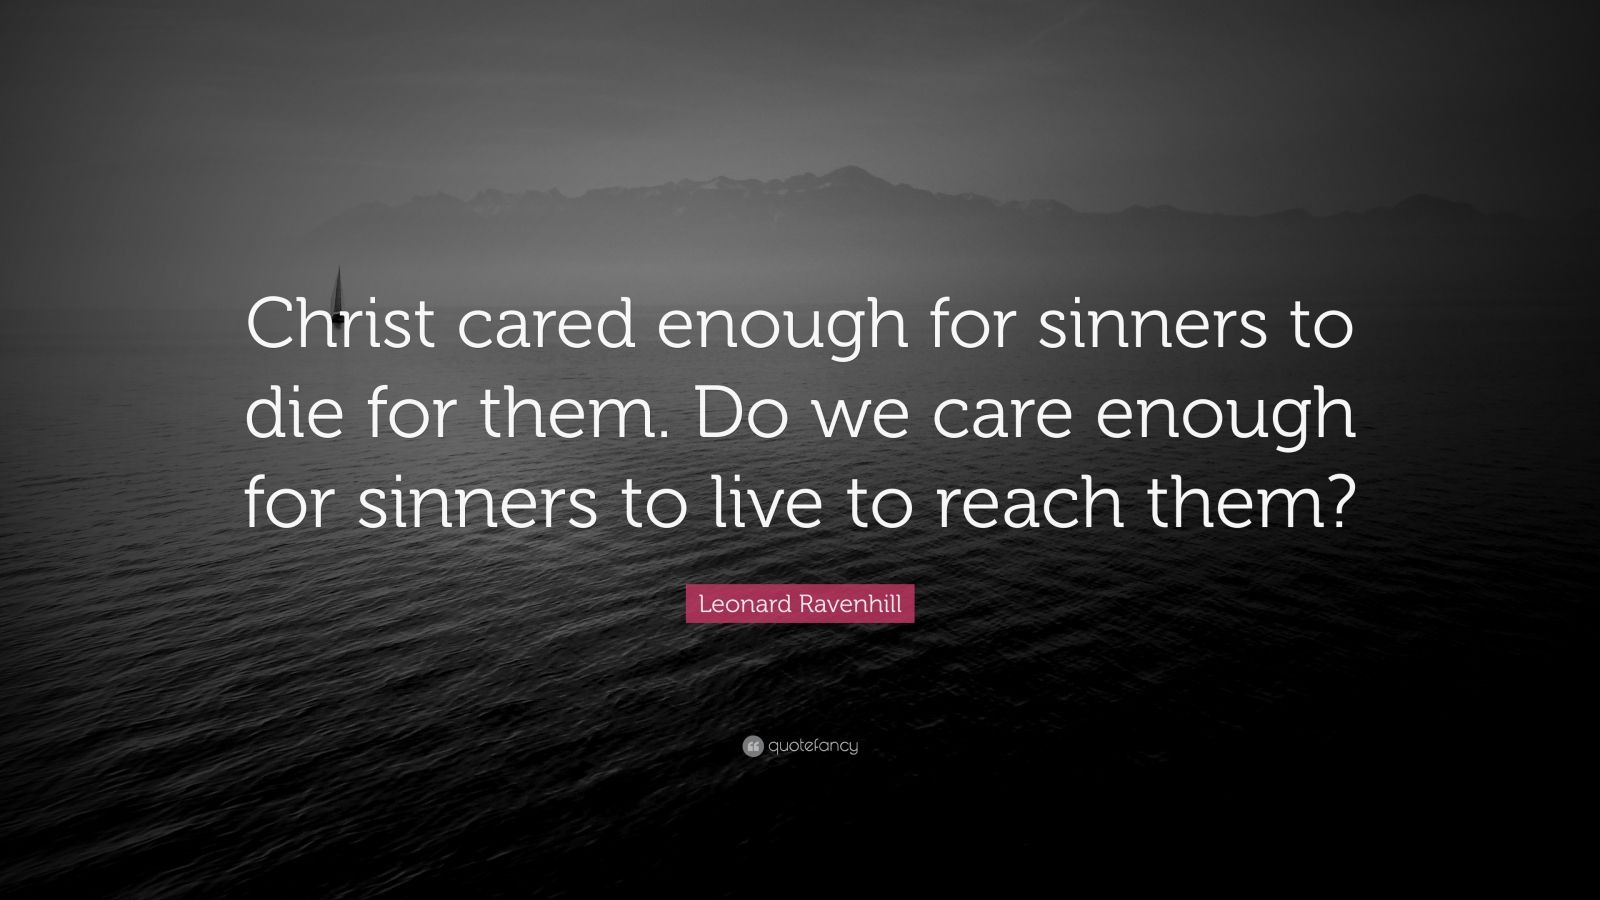 "Leonard Ravenhill Quote: ""Christ cared enough for sinners to die for them. Do we care enough for sinners to live to reach them?"""